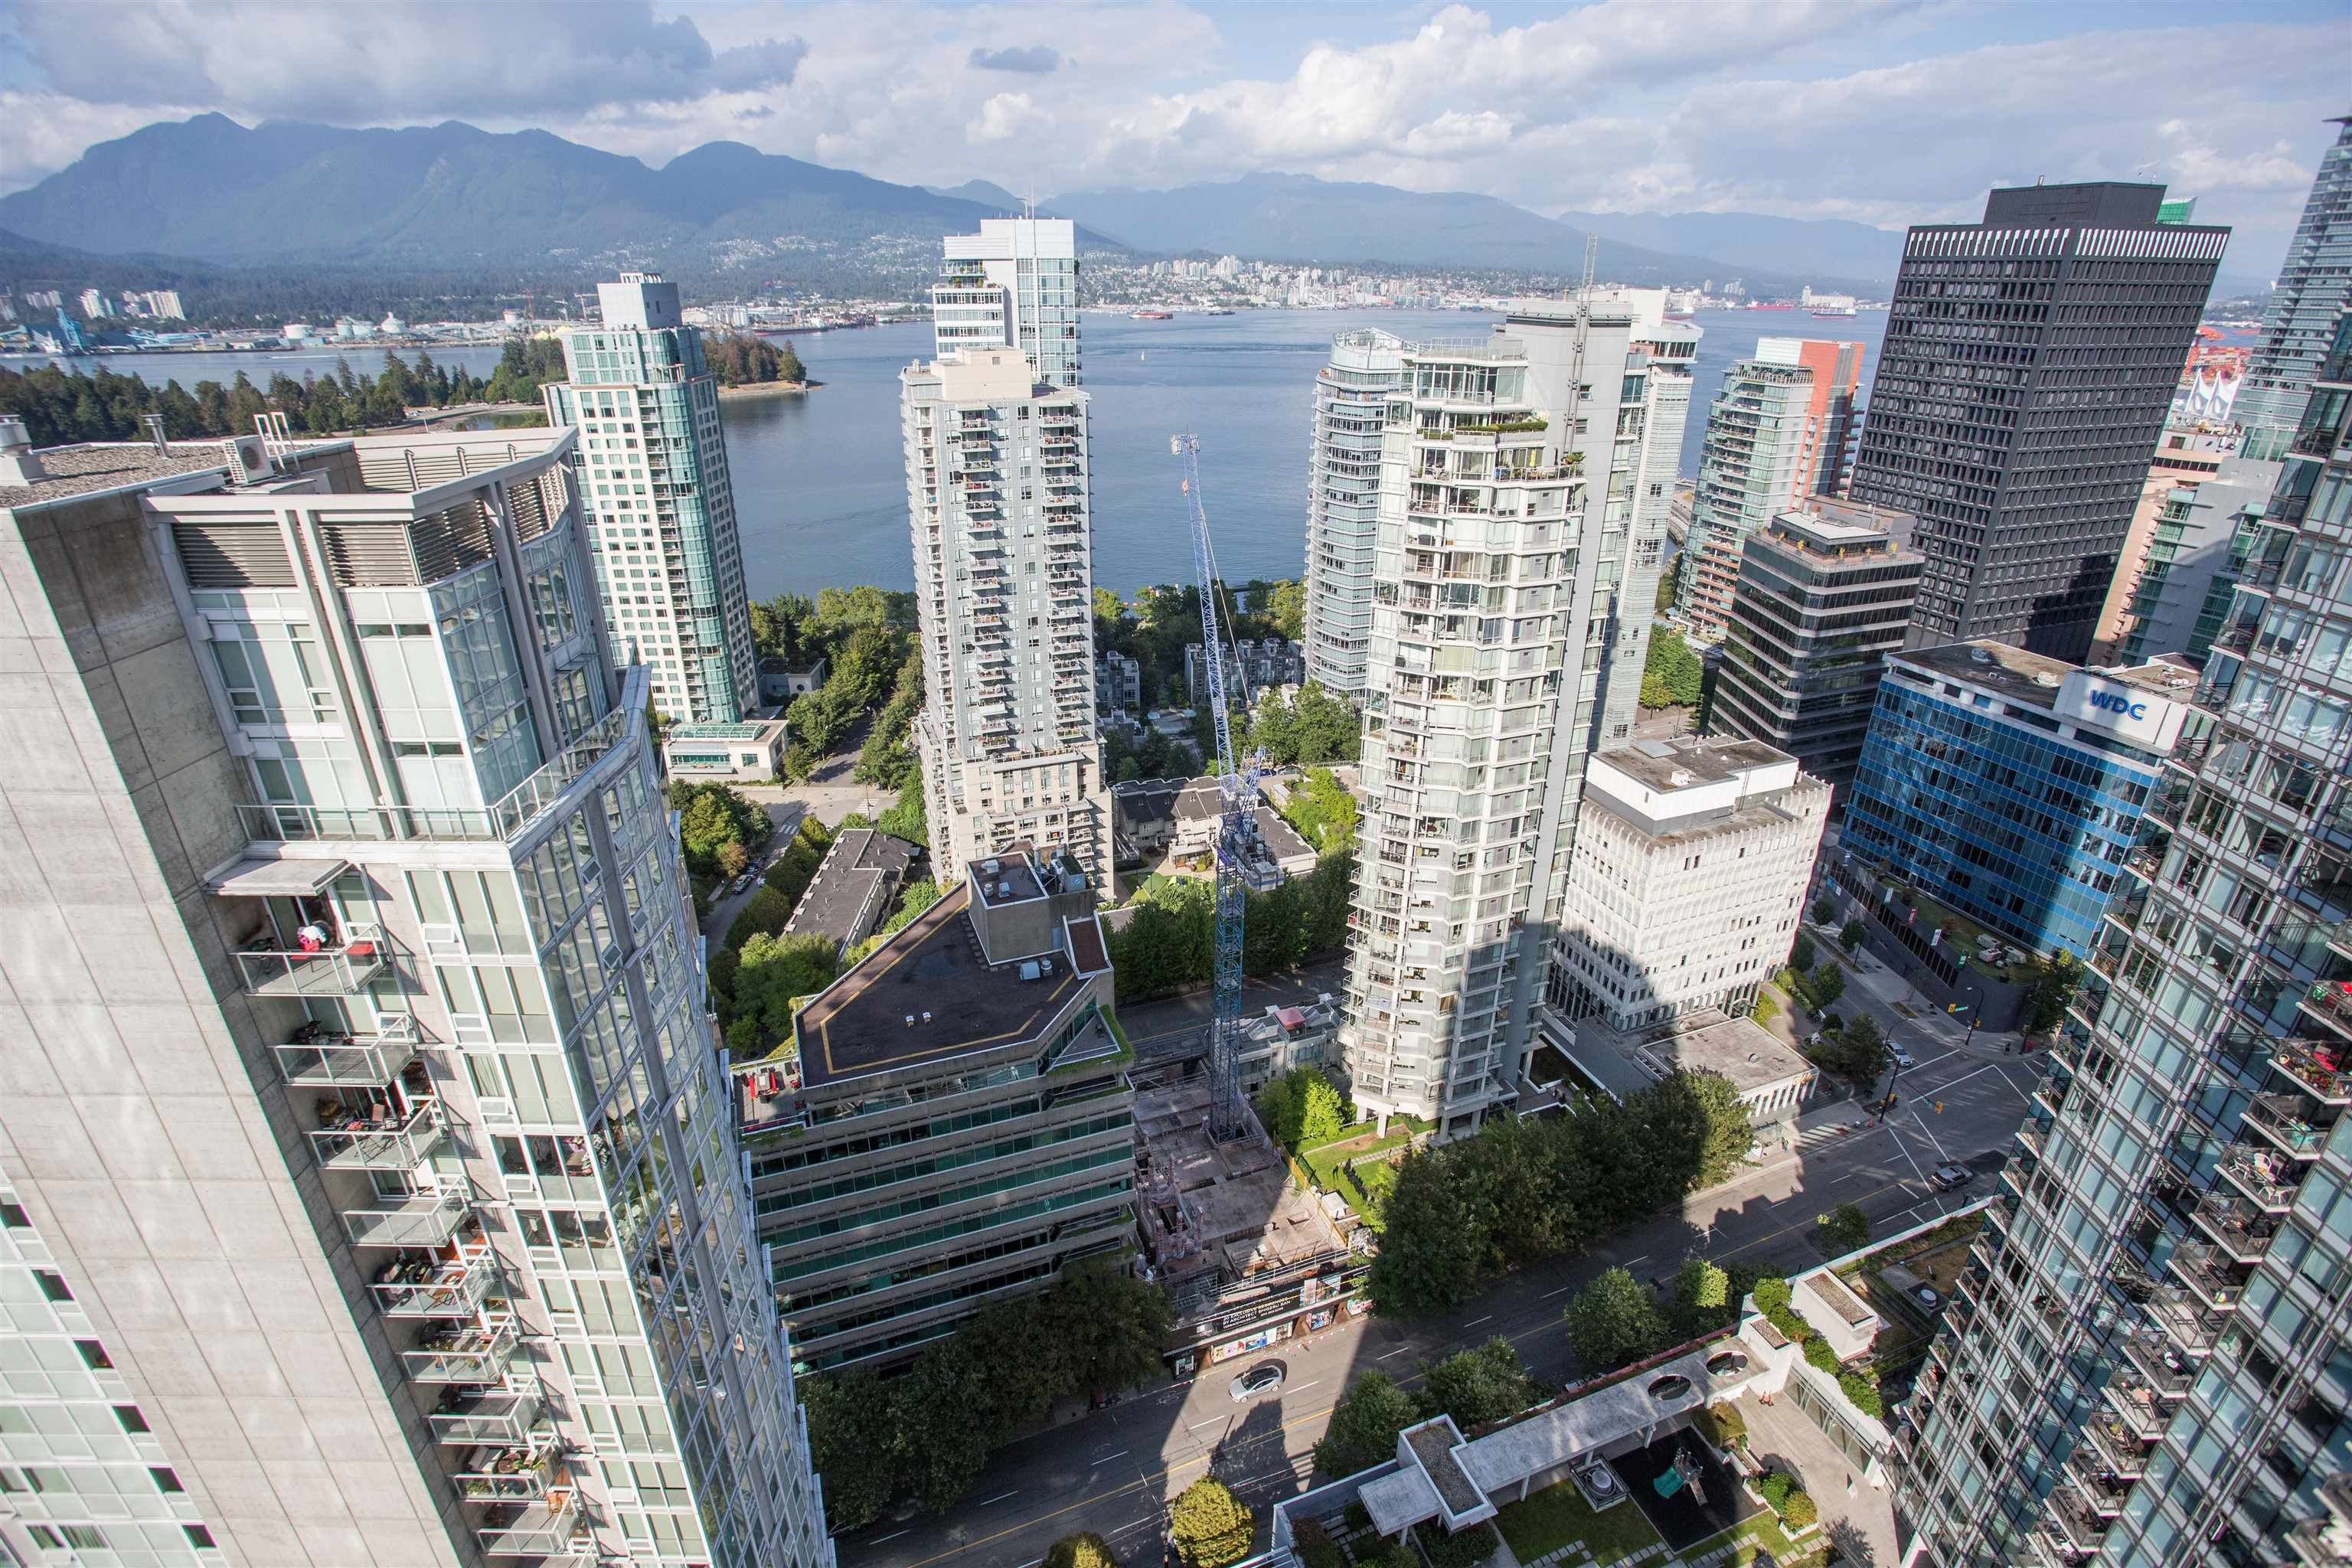 """Main Photo: 3302 1238 MELVILLE Street in Vancouver: Coal Harbour Condo for sale in """"POINTE CLAIRE"""" (Vancouver West)  : MLS®# R2615681"""